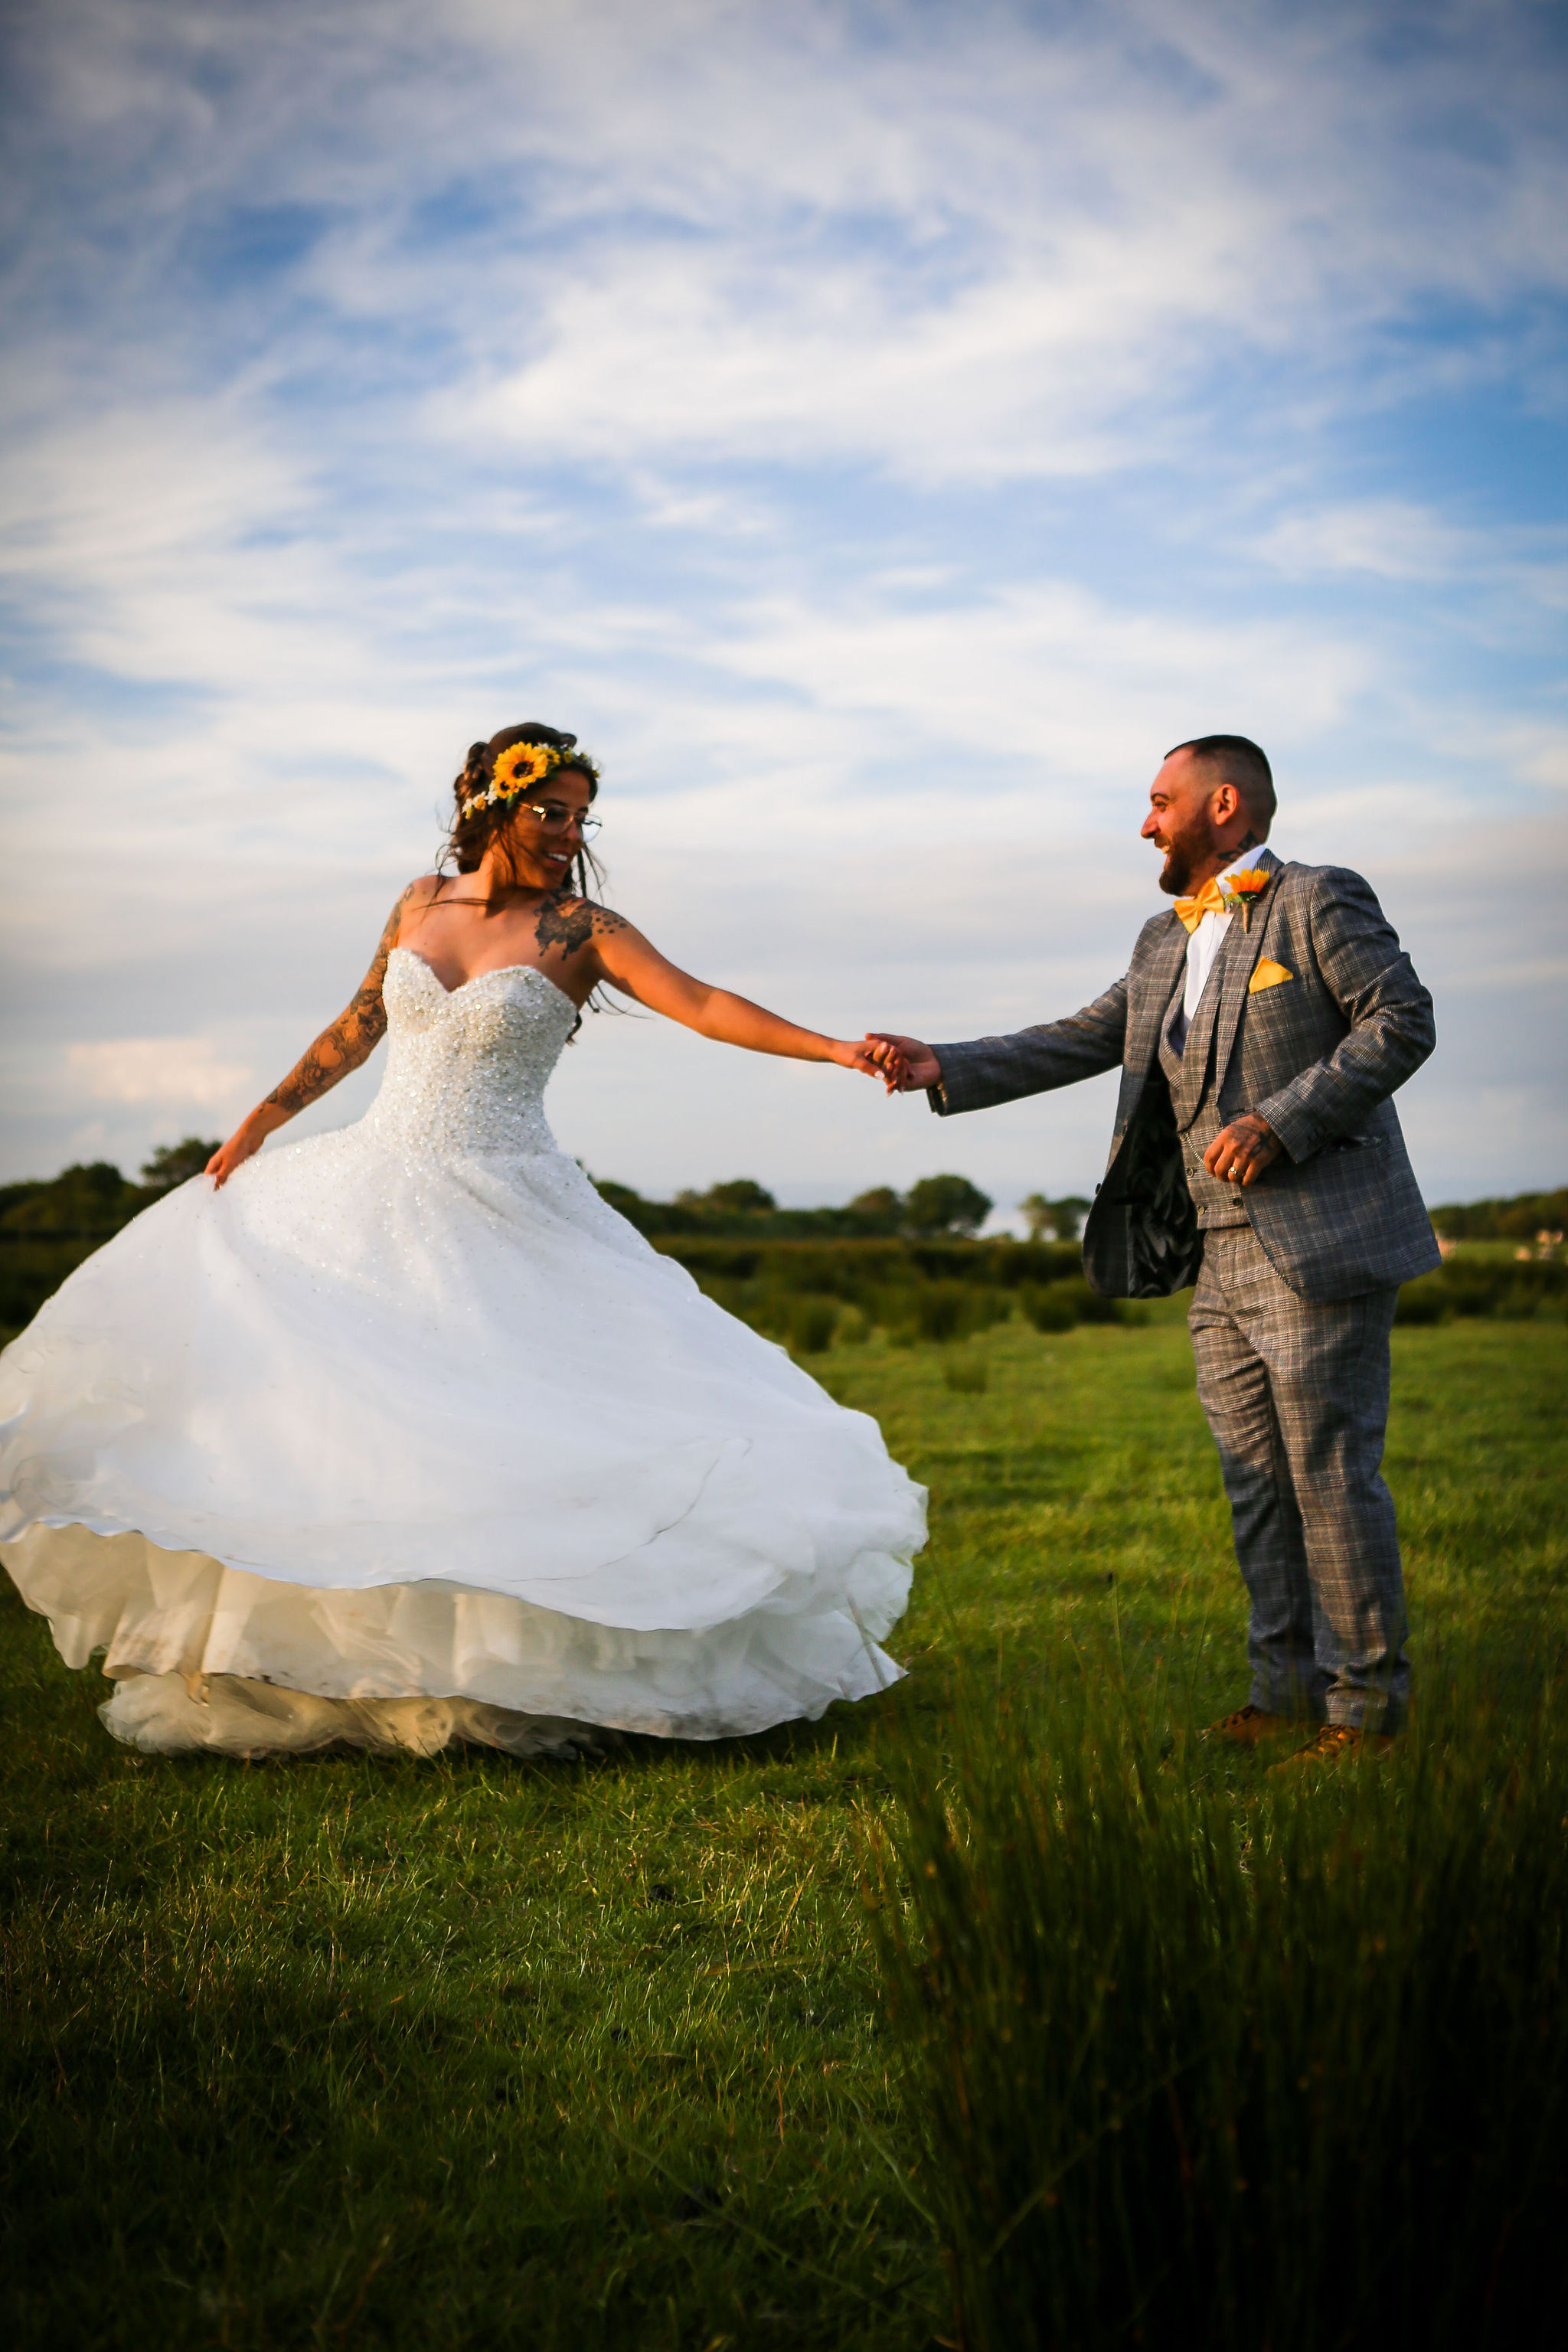 Harriet&Rhys Wedding - Magical sunflower wedding - bride and groom